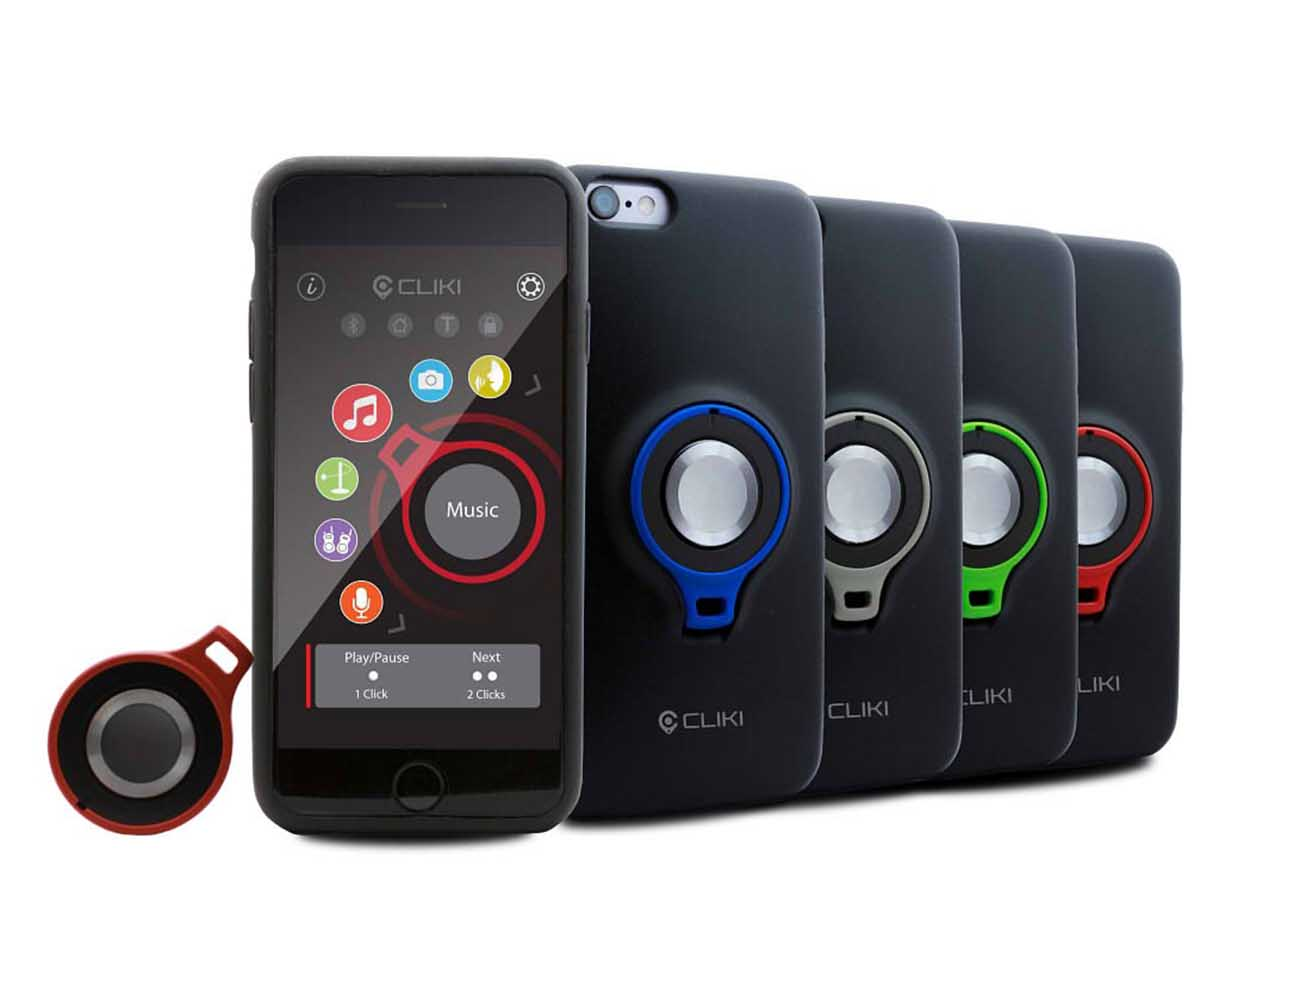 CLIKI – Removable Smart Control Button Case